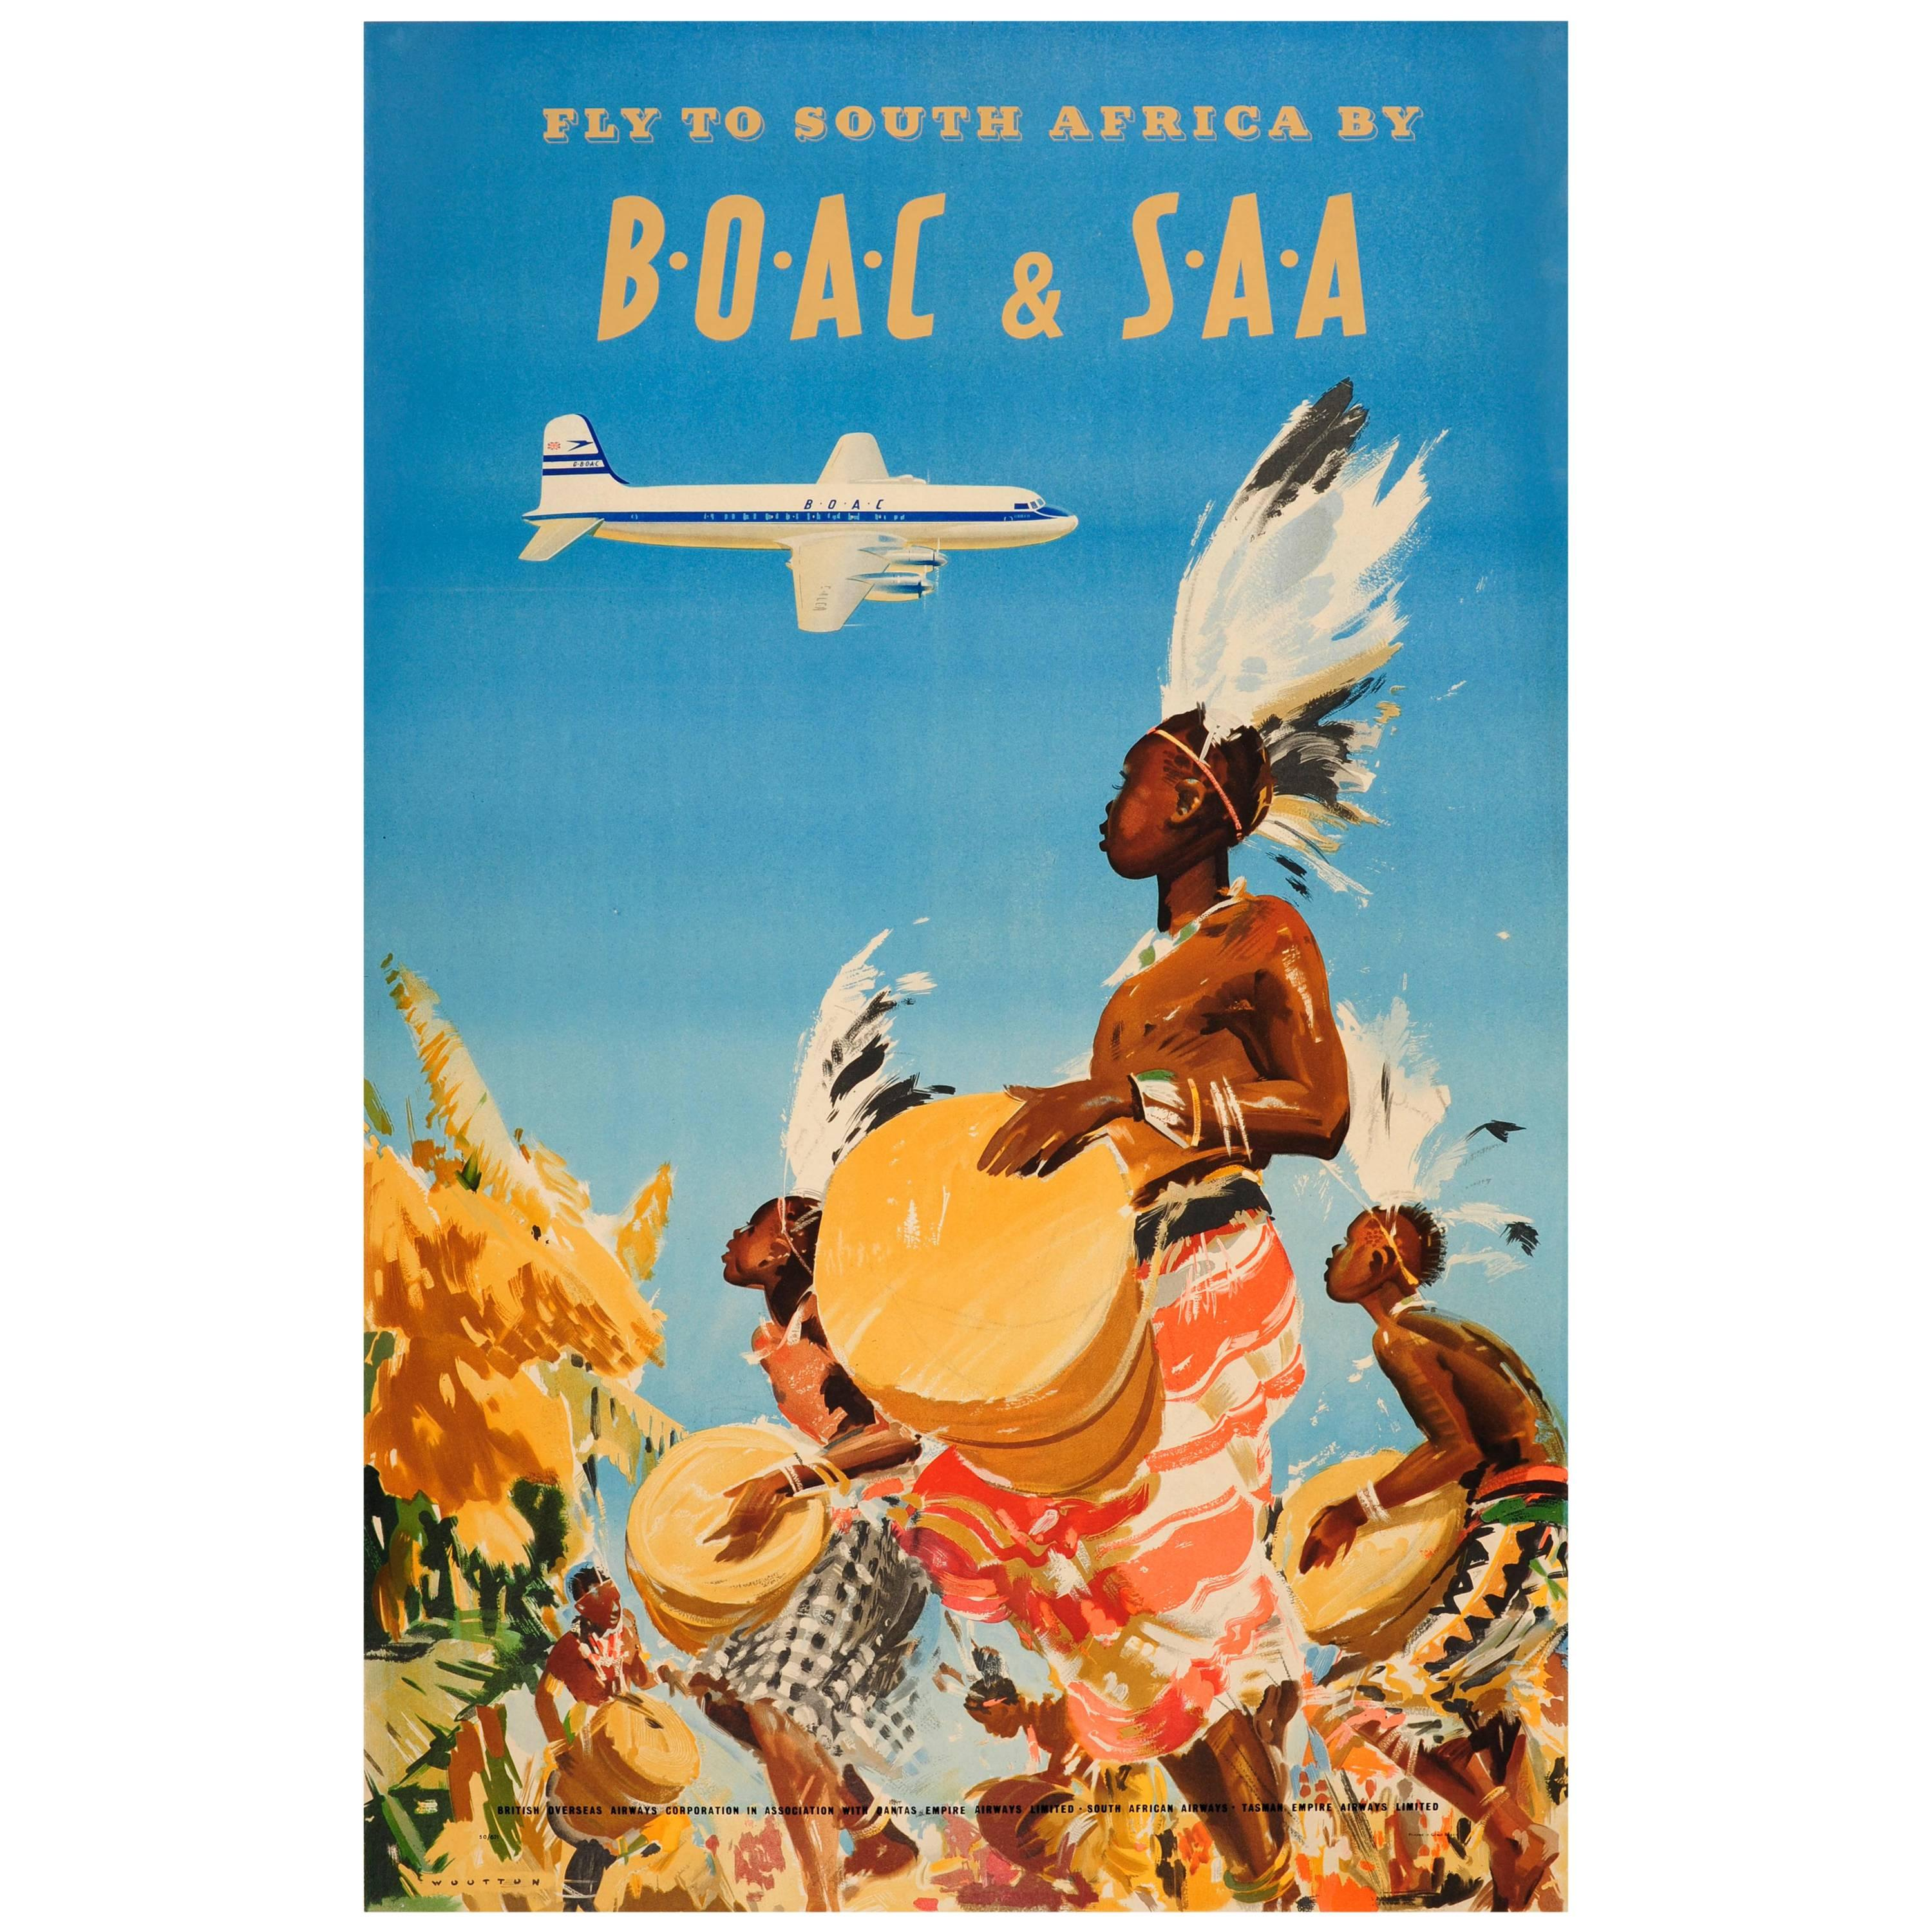 Original Vintage Travel Advertising Poster - Fly to South Africa by ...